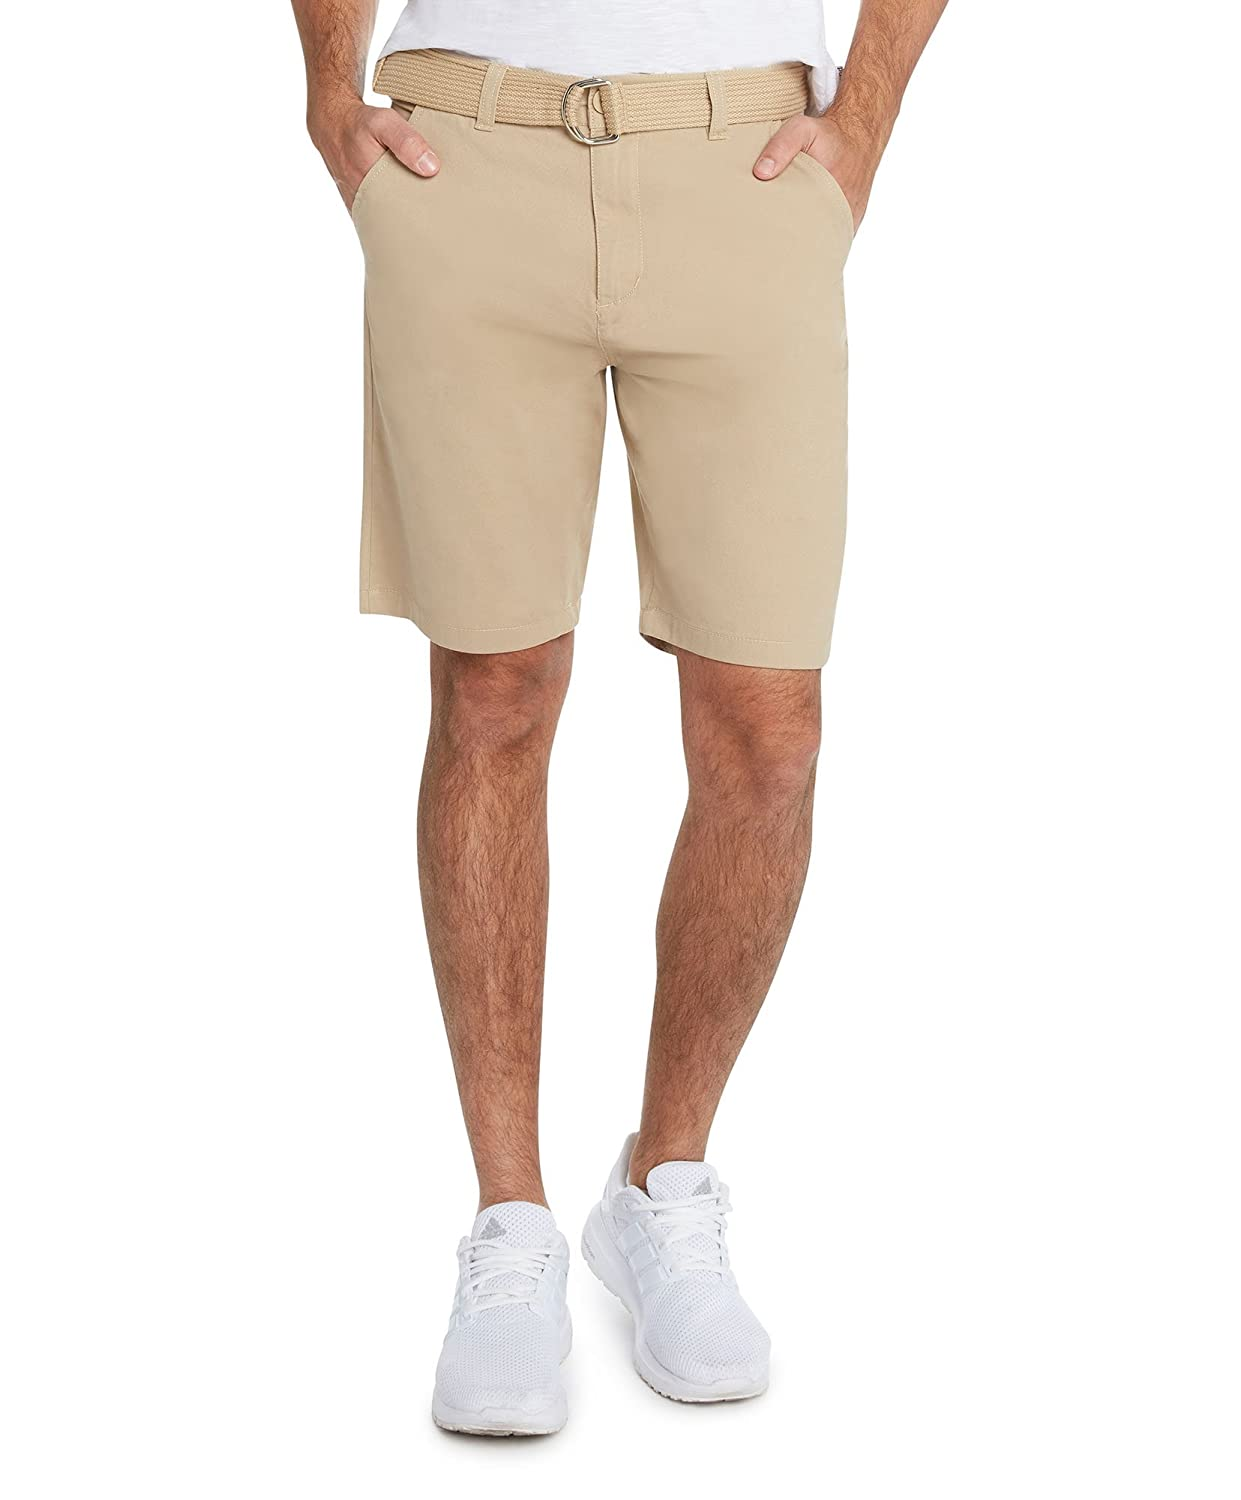 9 Crowns Men's Flat Front Modern fit Twill Chino Belted Shorts Essentials